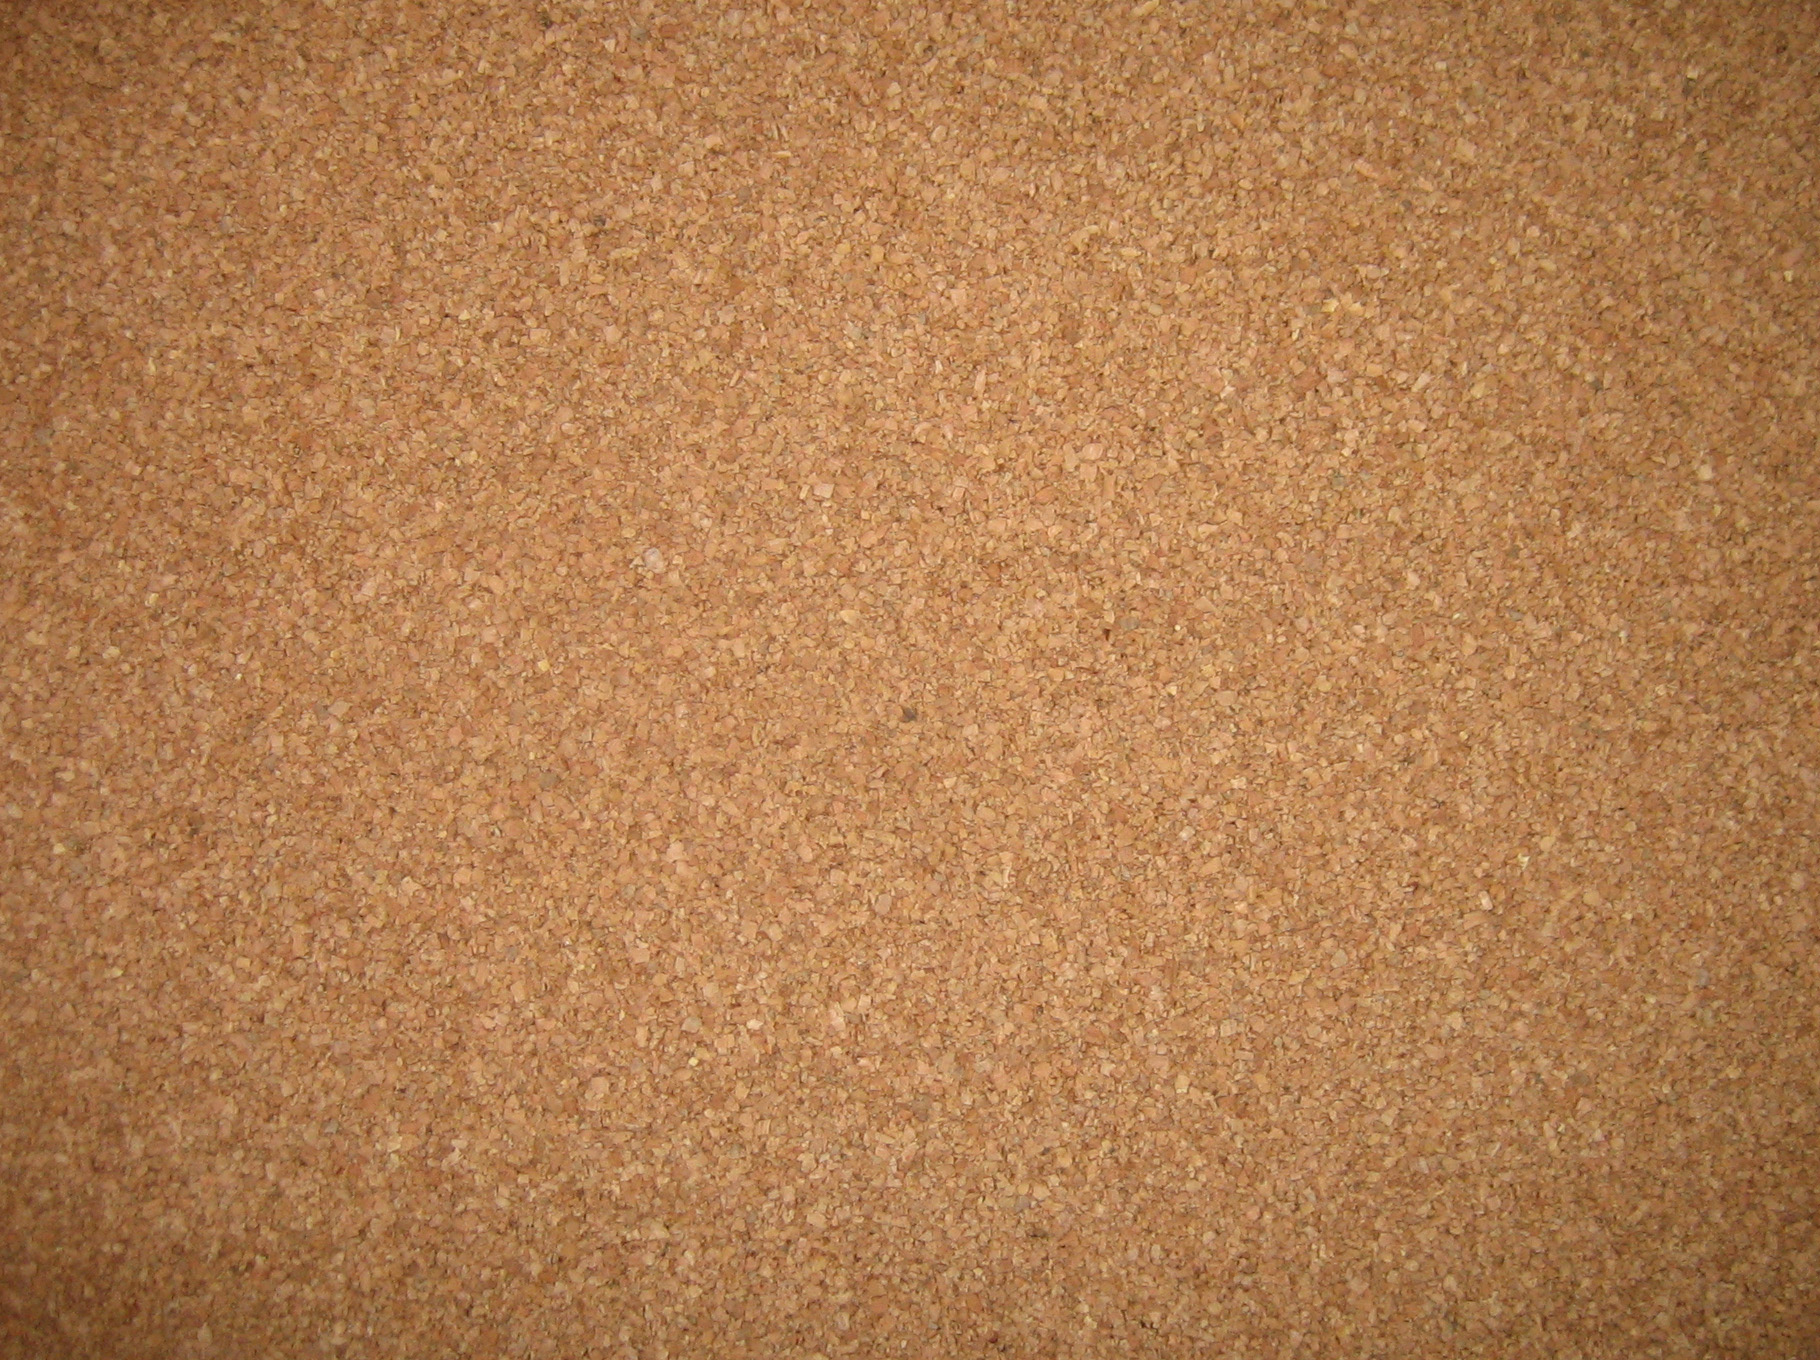 cork texture background stock - photo #30